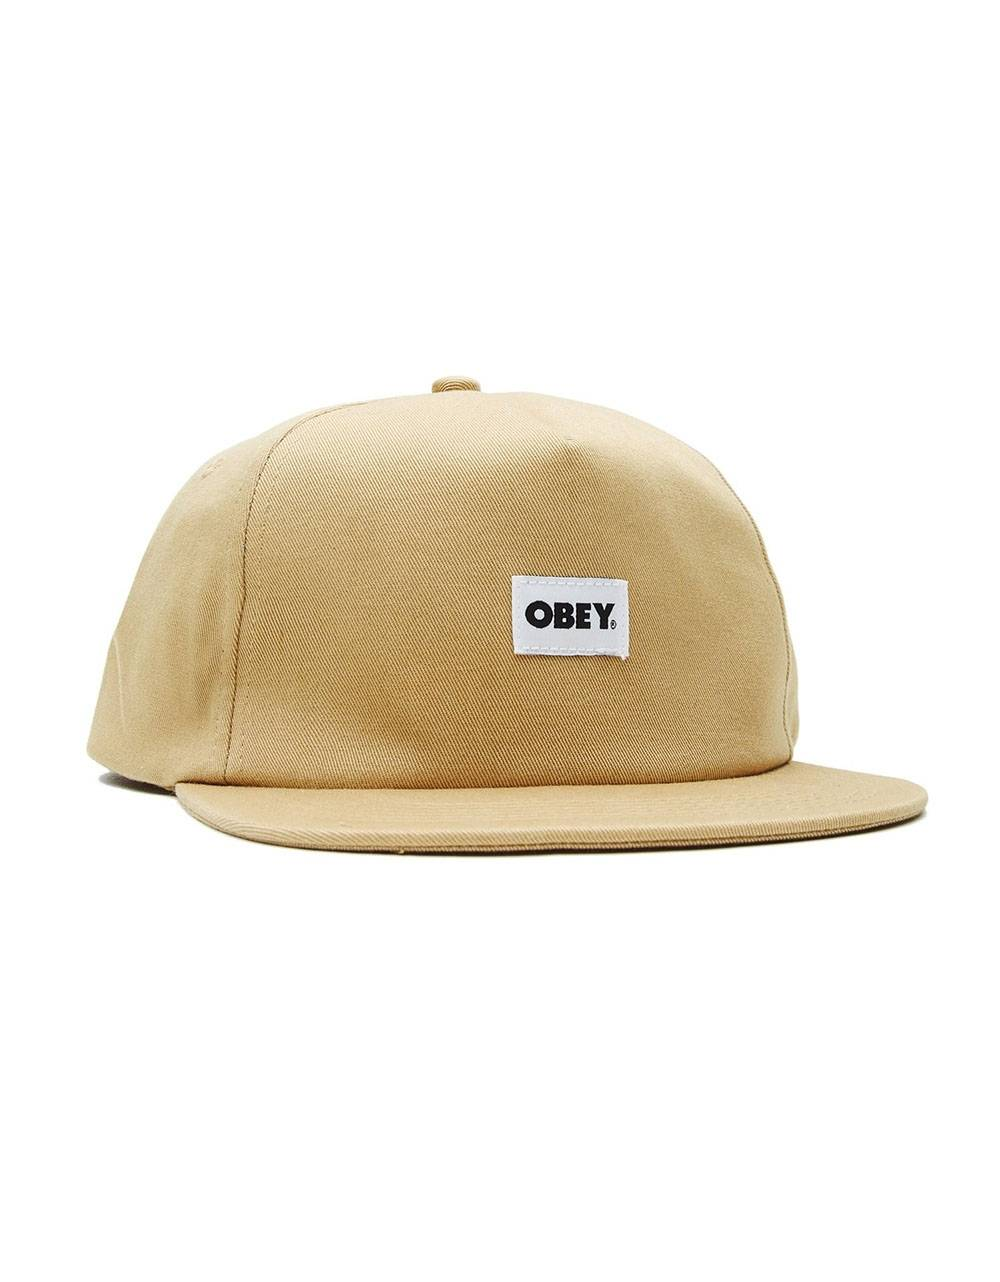 Obey bold label 6 panel strapback hat - almond obey Hat 36,89 €